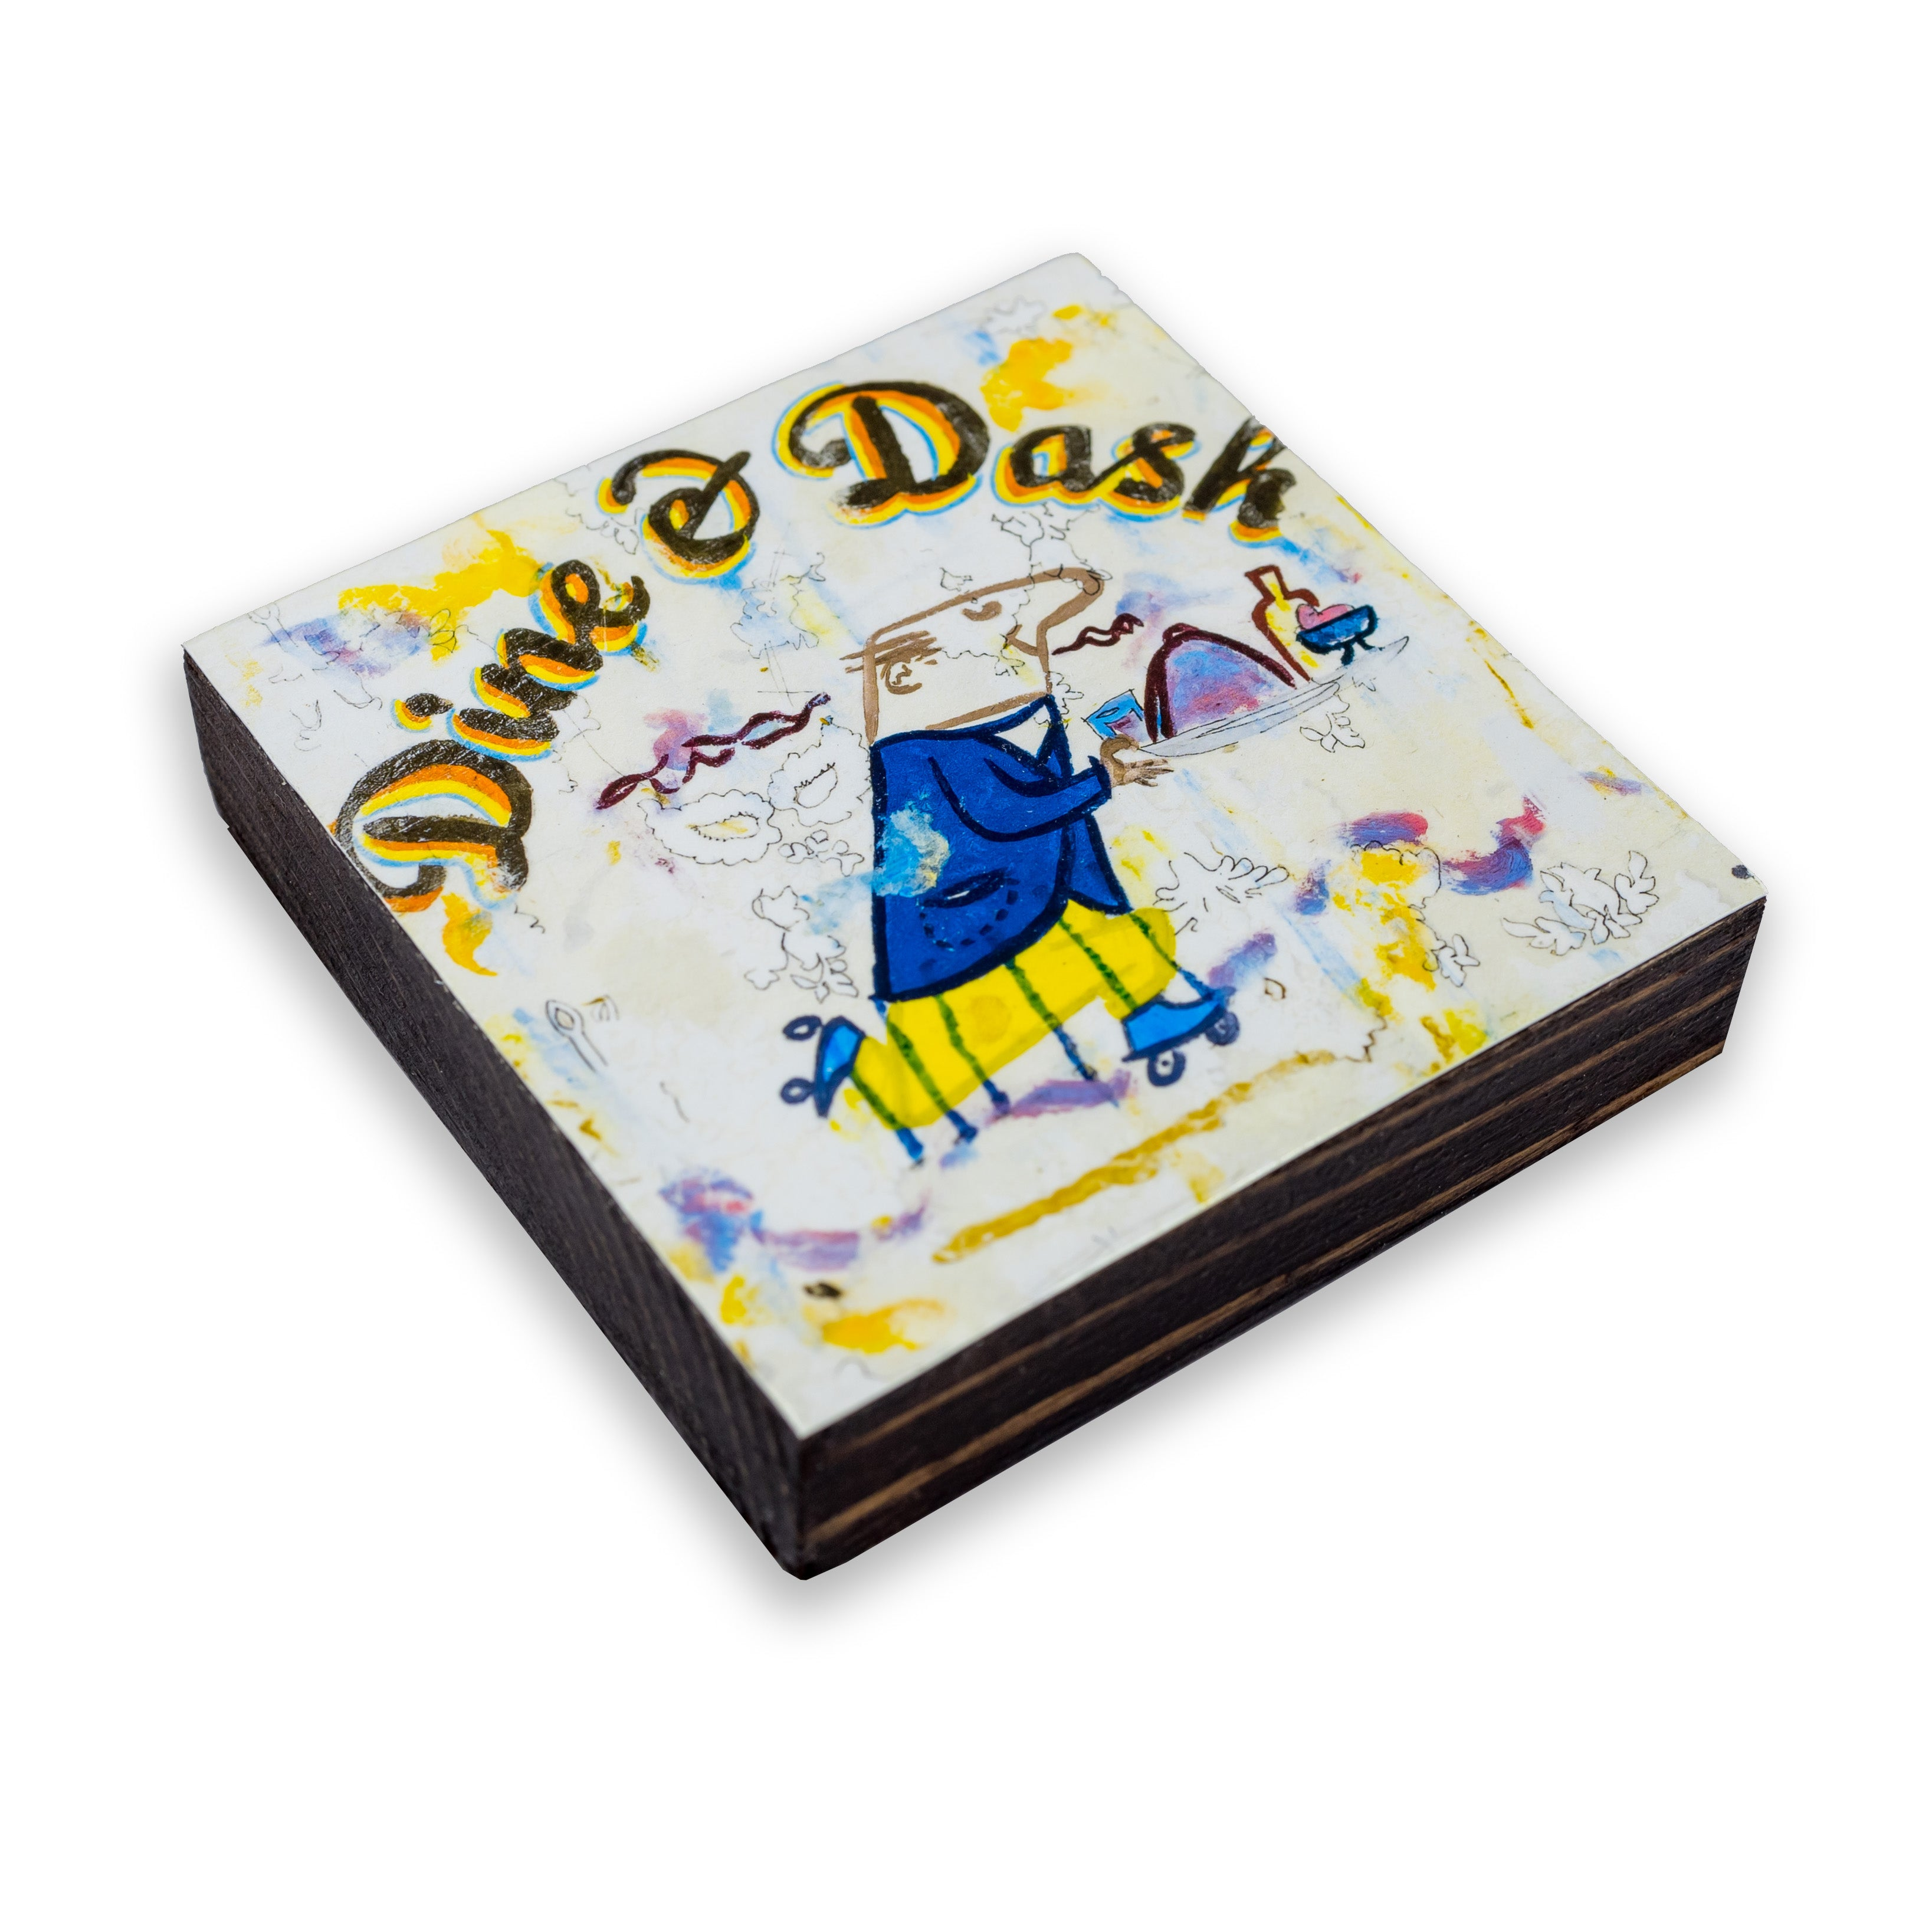 Dine & Dash Beer Coaster